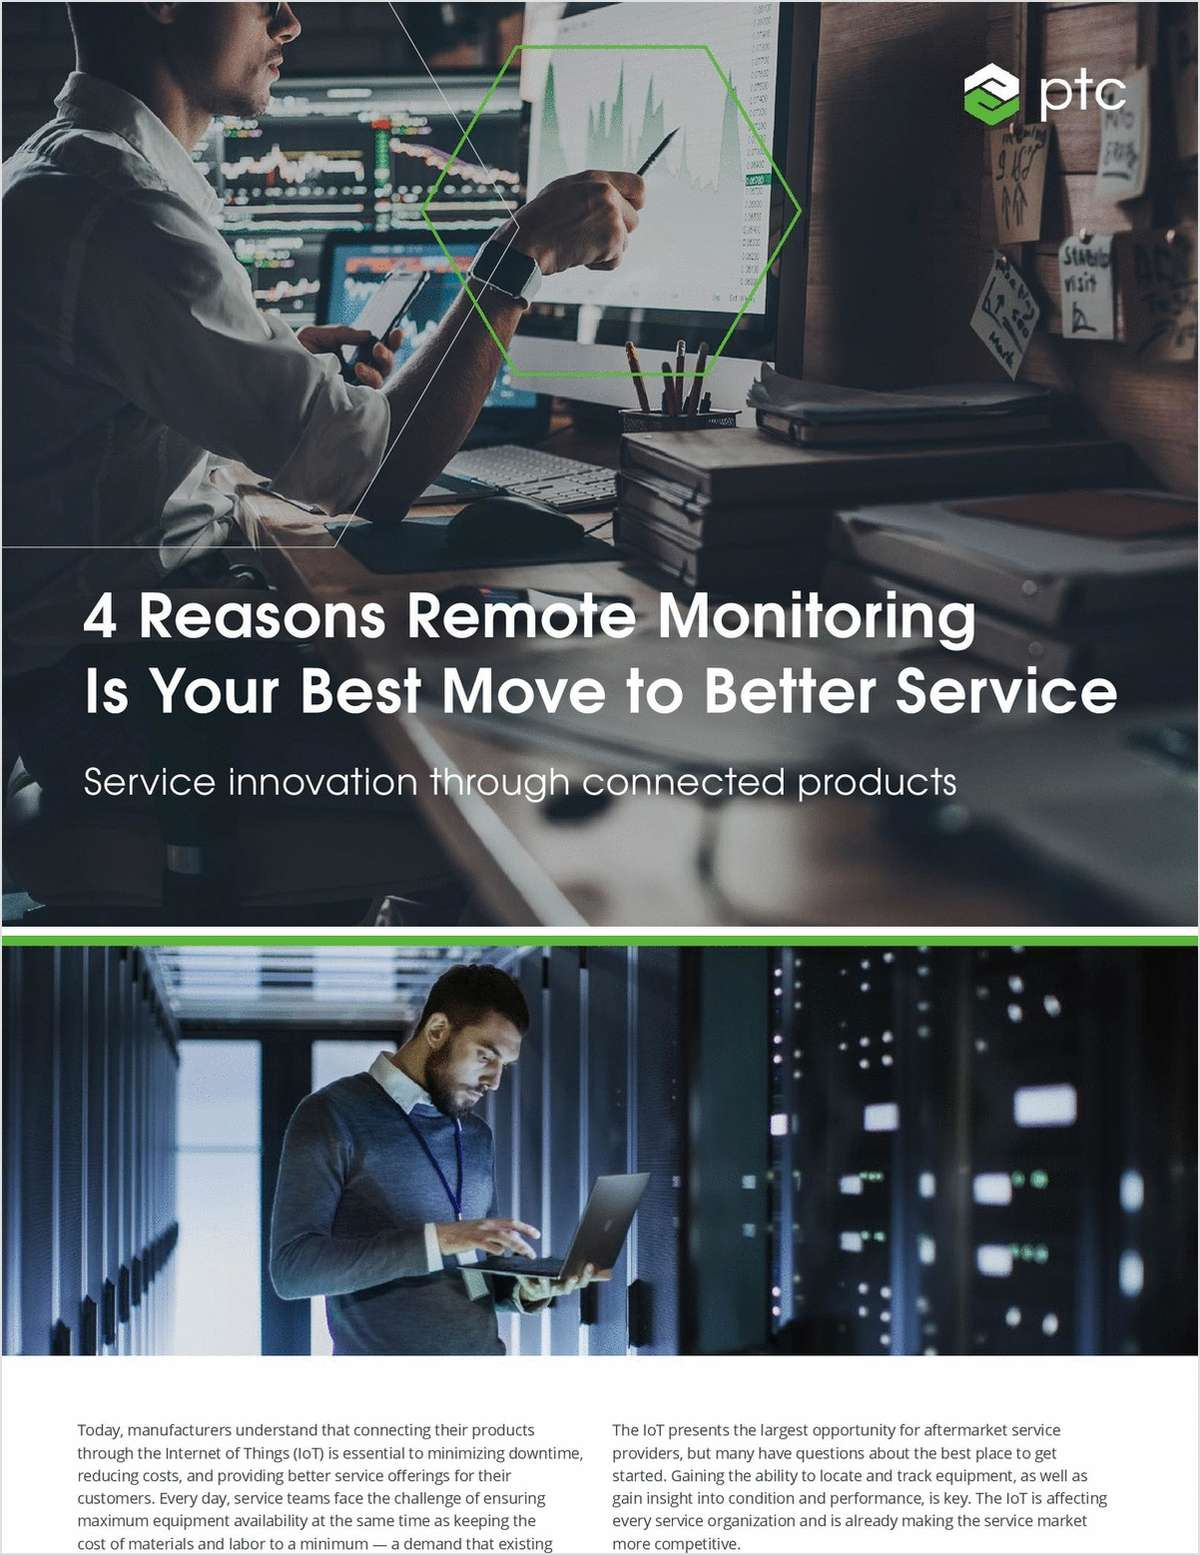 4 Reasons Remote Monitoring is Your Best Move to Better Service